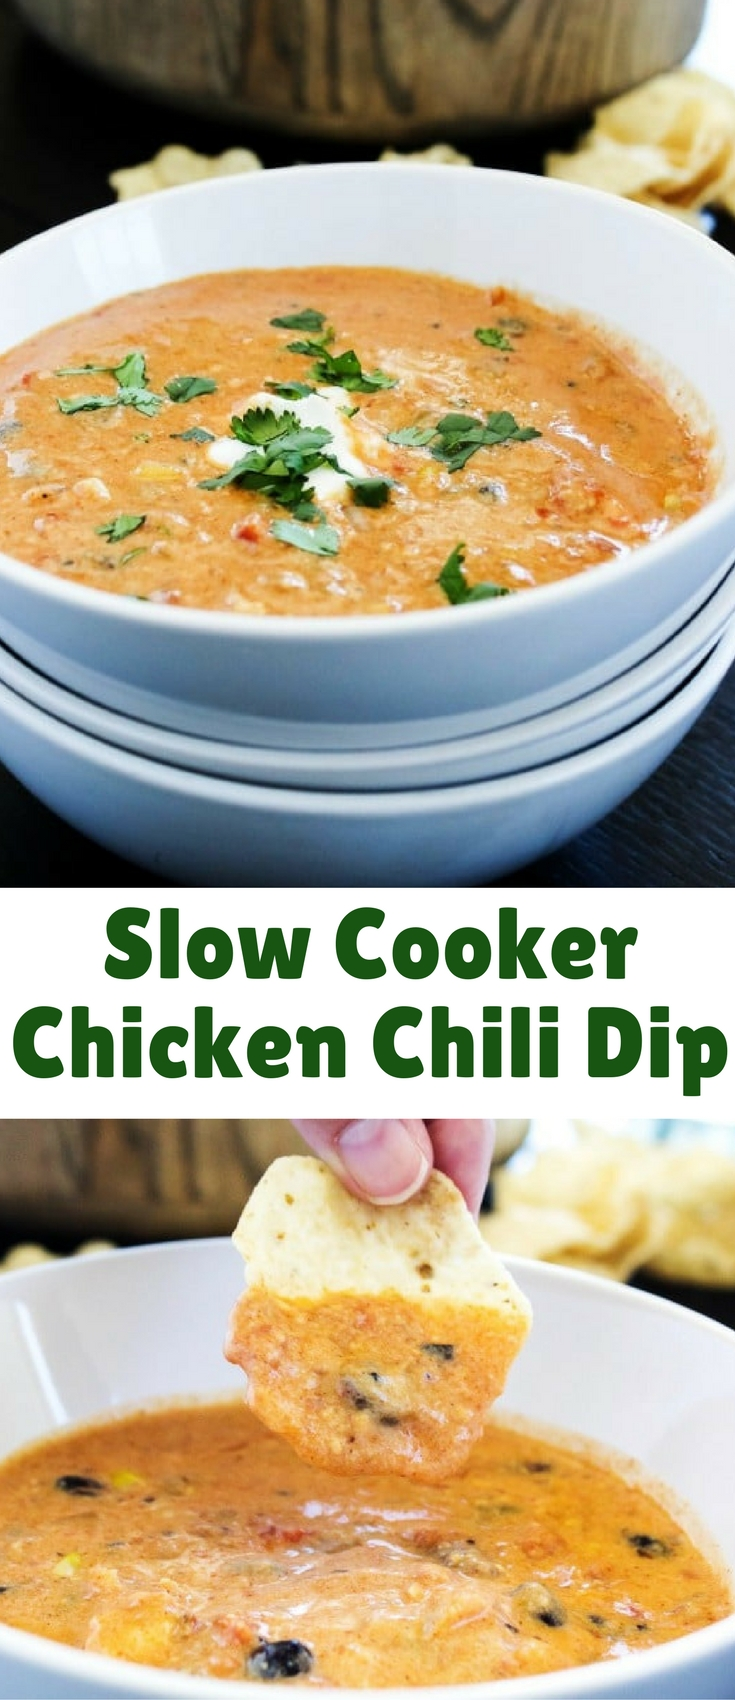 SLOW COOKER CHICKEN CHILI DIP is the perfect dip to serve to a crowd or to devour with a few friends on game day.Full of flavor and easy to throw together this is a party must have.